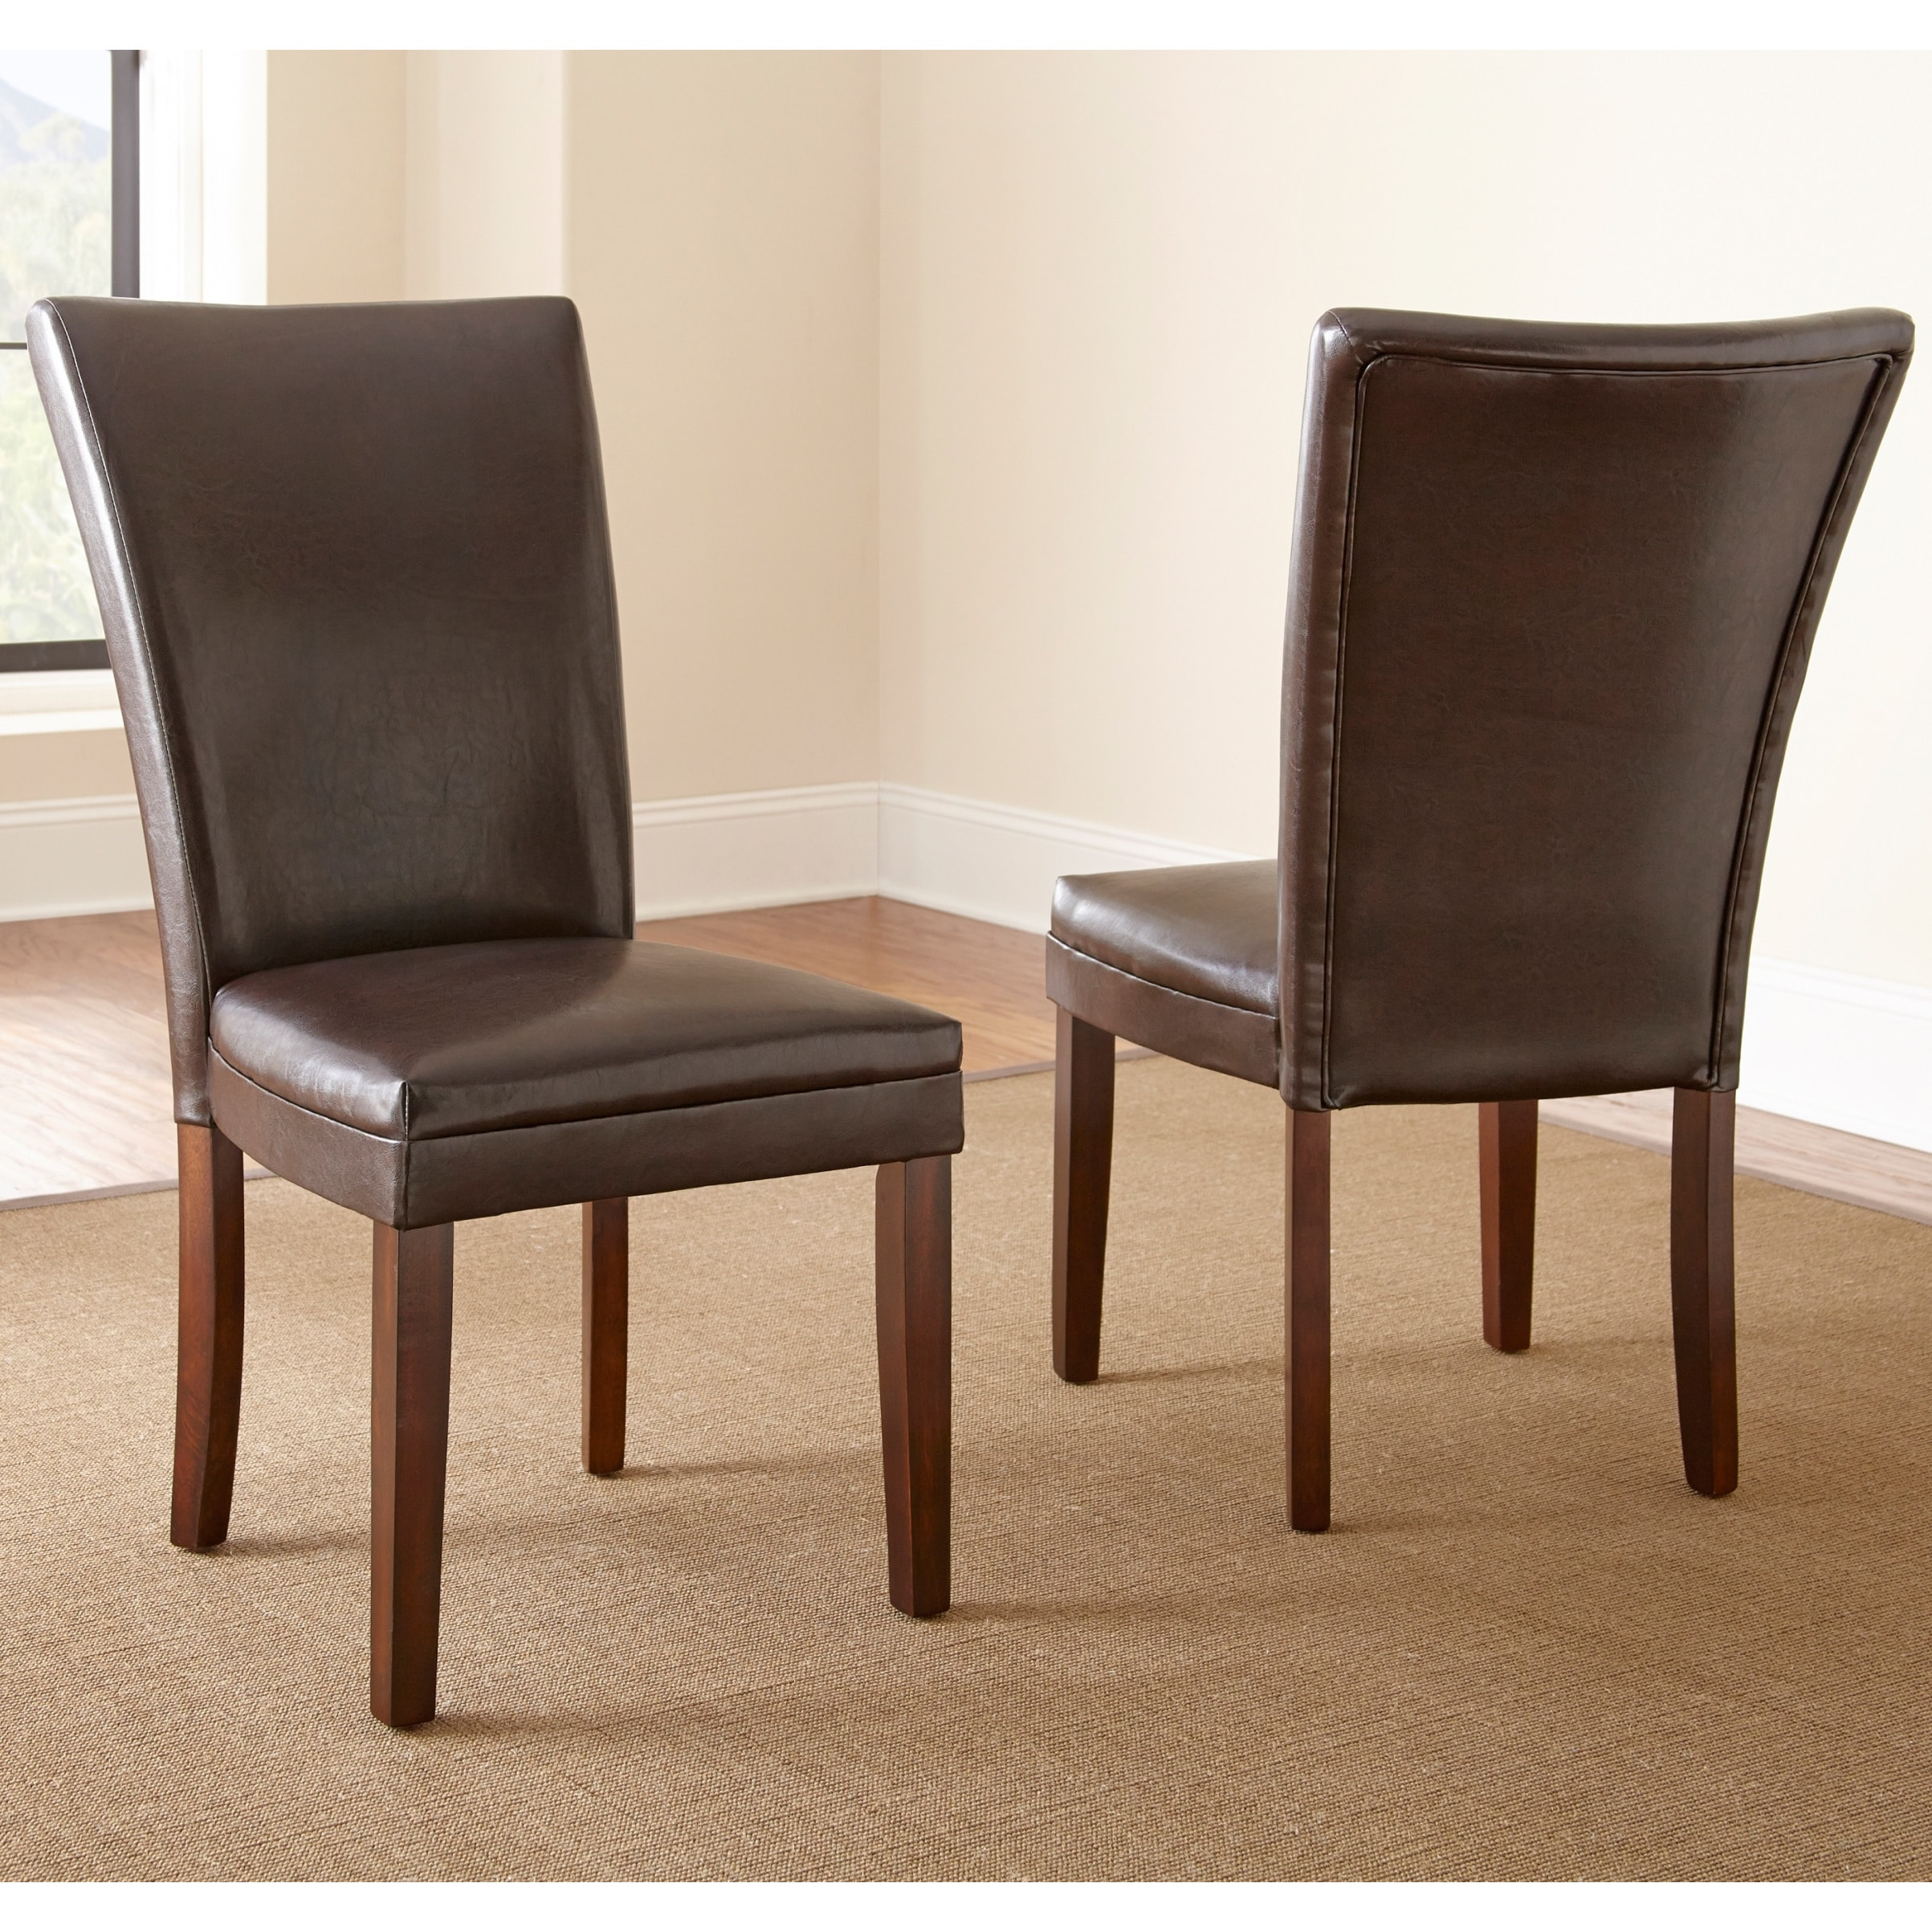 Greyson Living  Hampton Brown Bonded Leather Dining Chair with Memory Foam Seat (Set of 2)